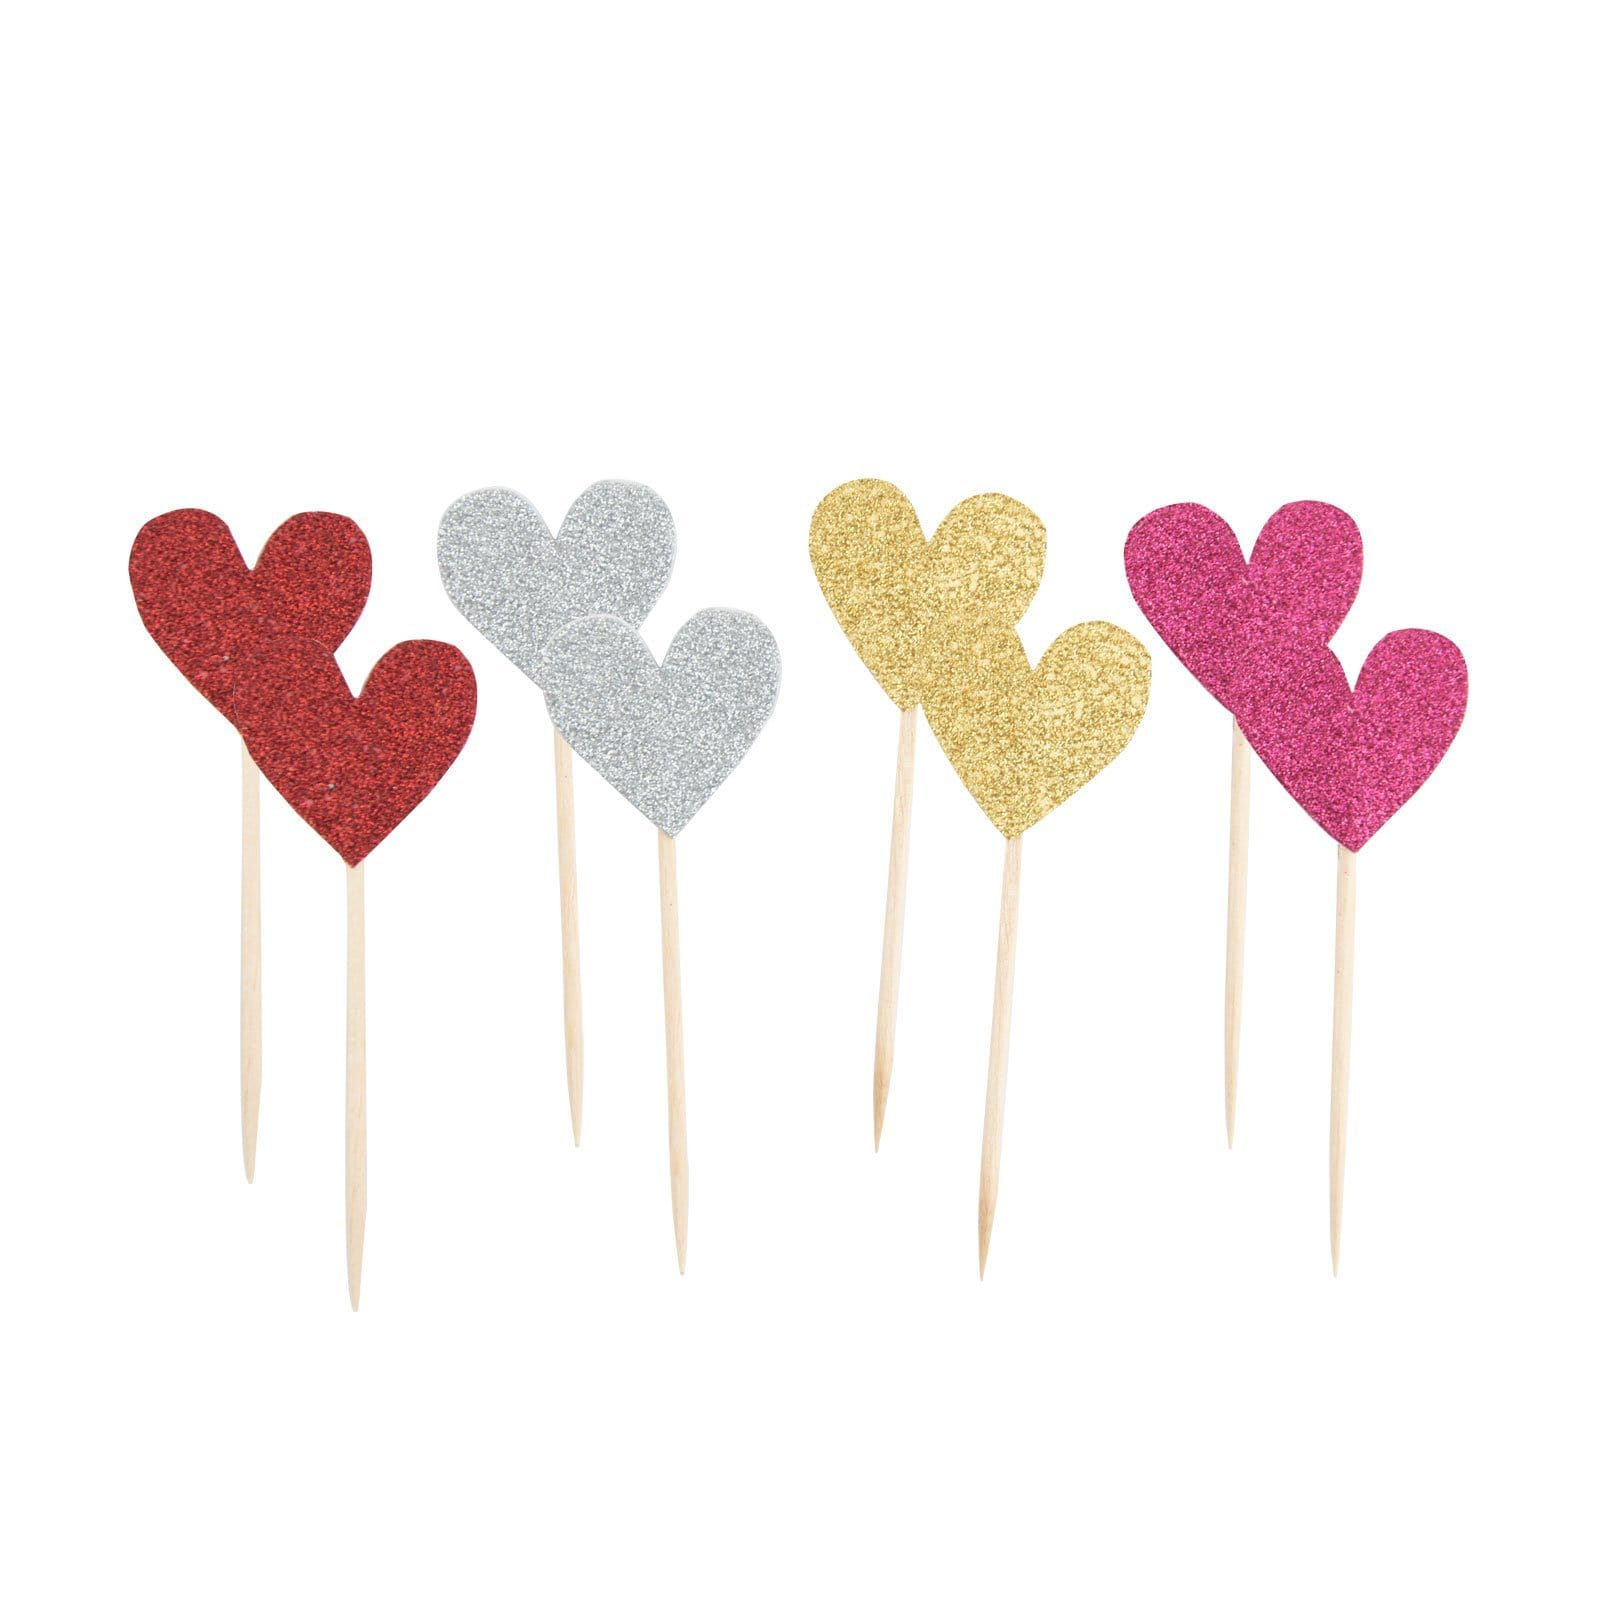 8 colourful glittery heart shaped cards on top of wooden sticks for party